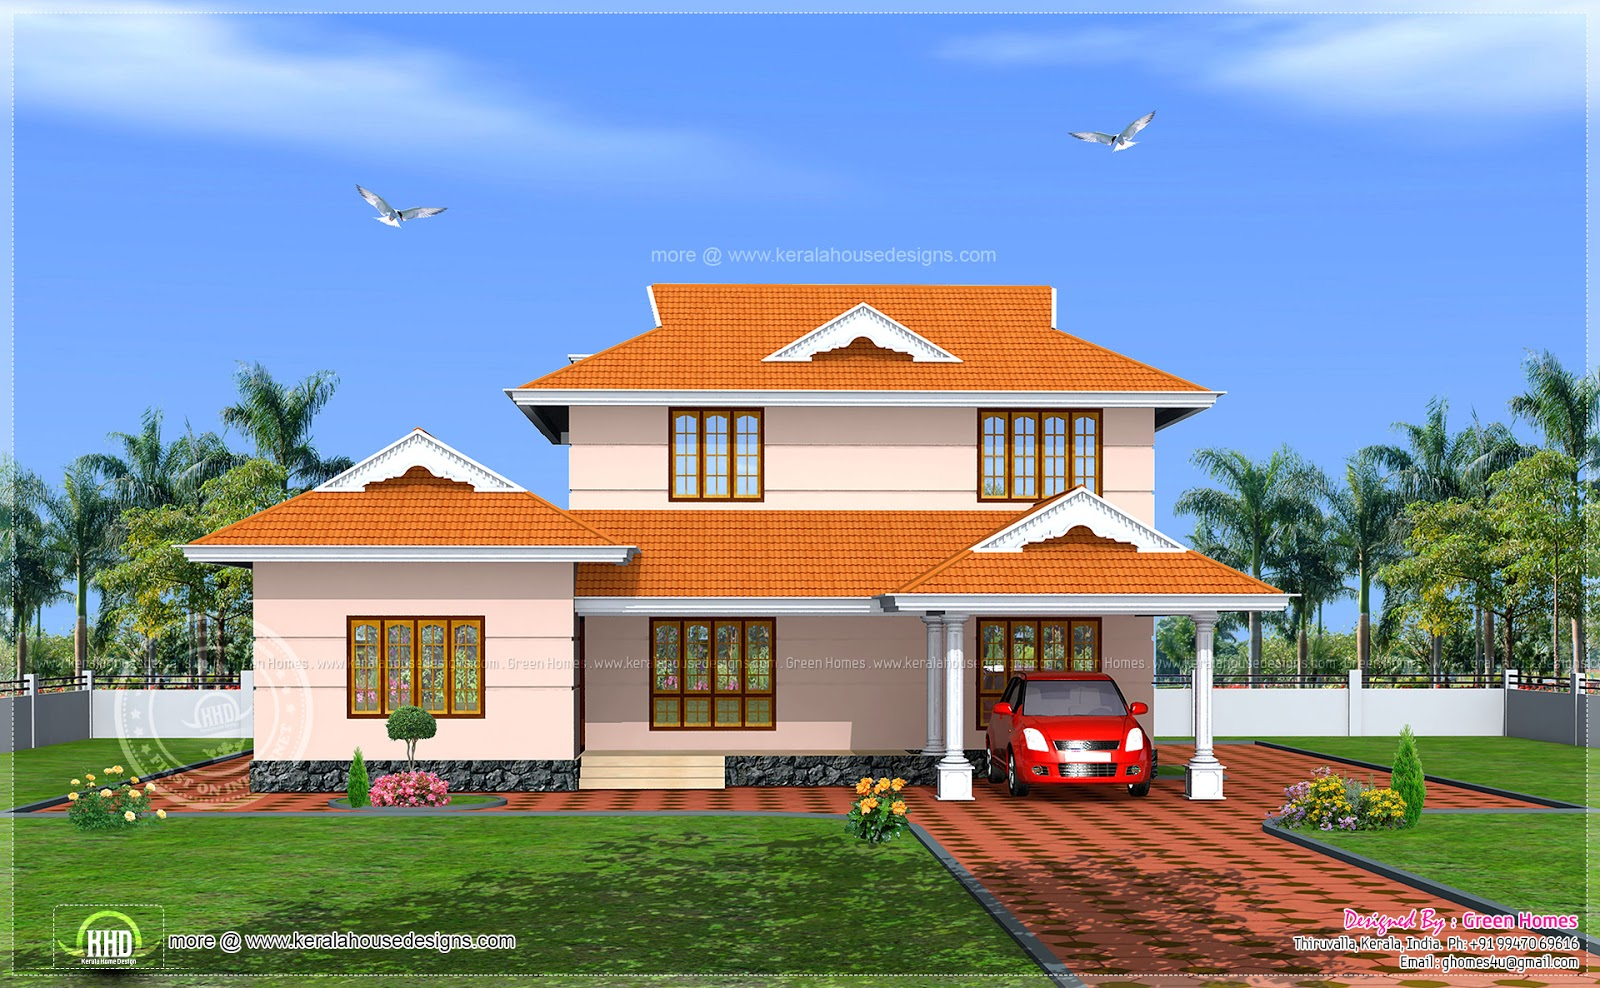 Home design kerala model house q for Home designs for kerala